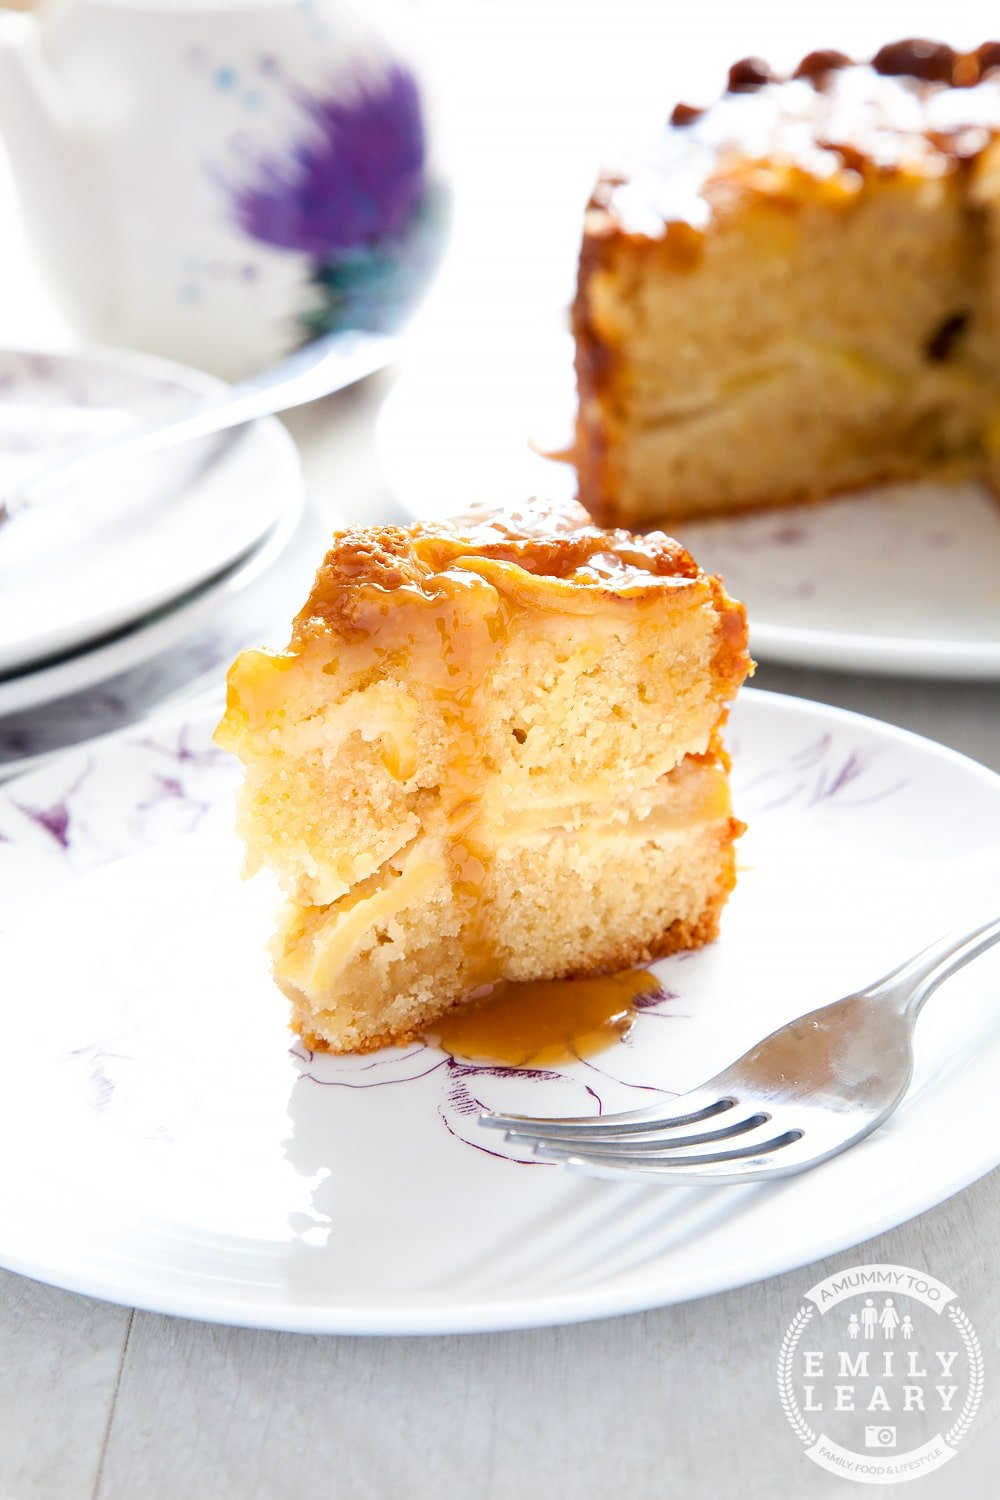 In the mood for something sweet with apples? This toffee apple cake is moist and delicious. Serve it hot with ice cream or cold with custard.